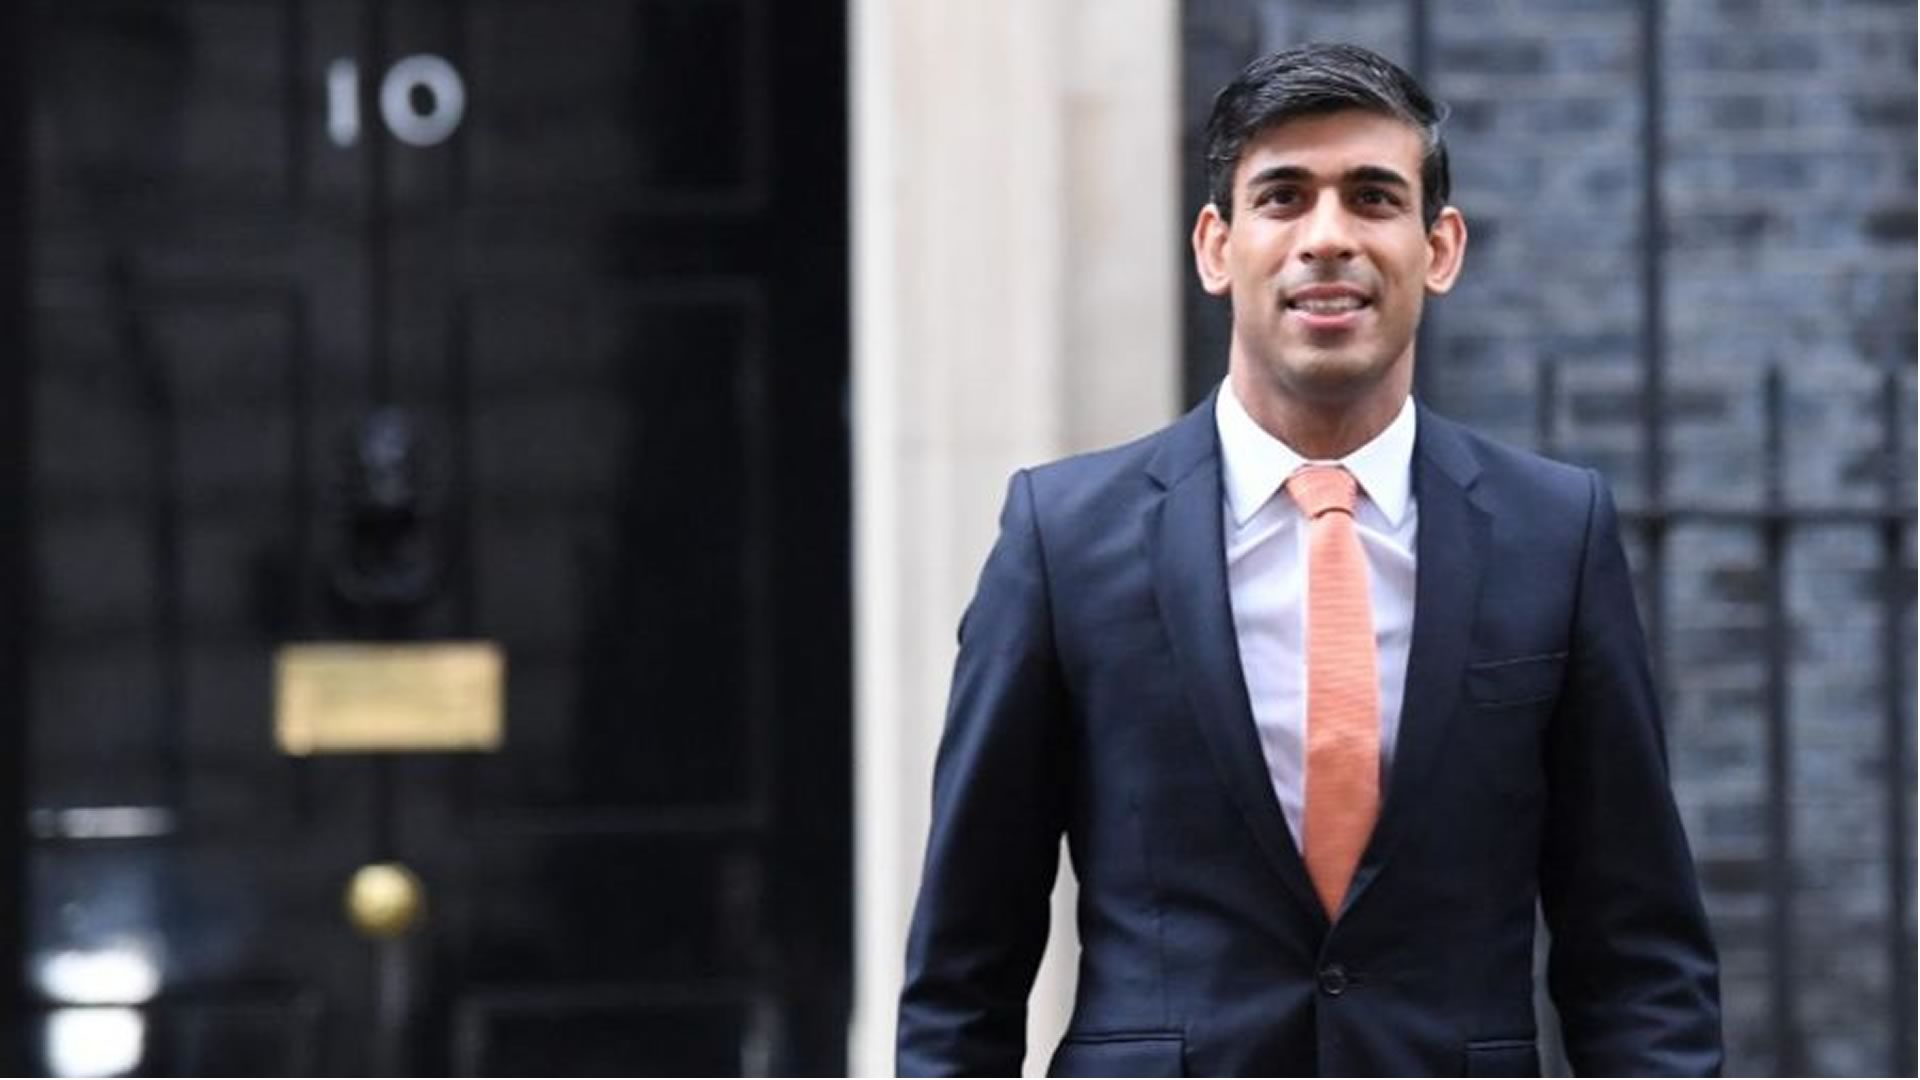 Rishi Sunak leaving 10 downing street